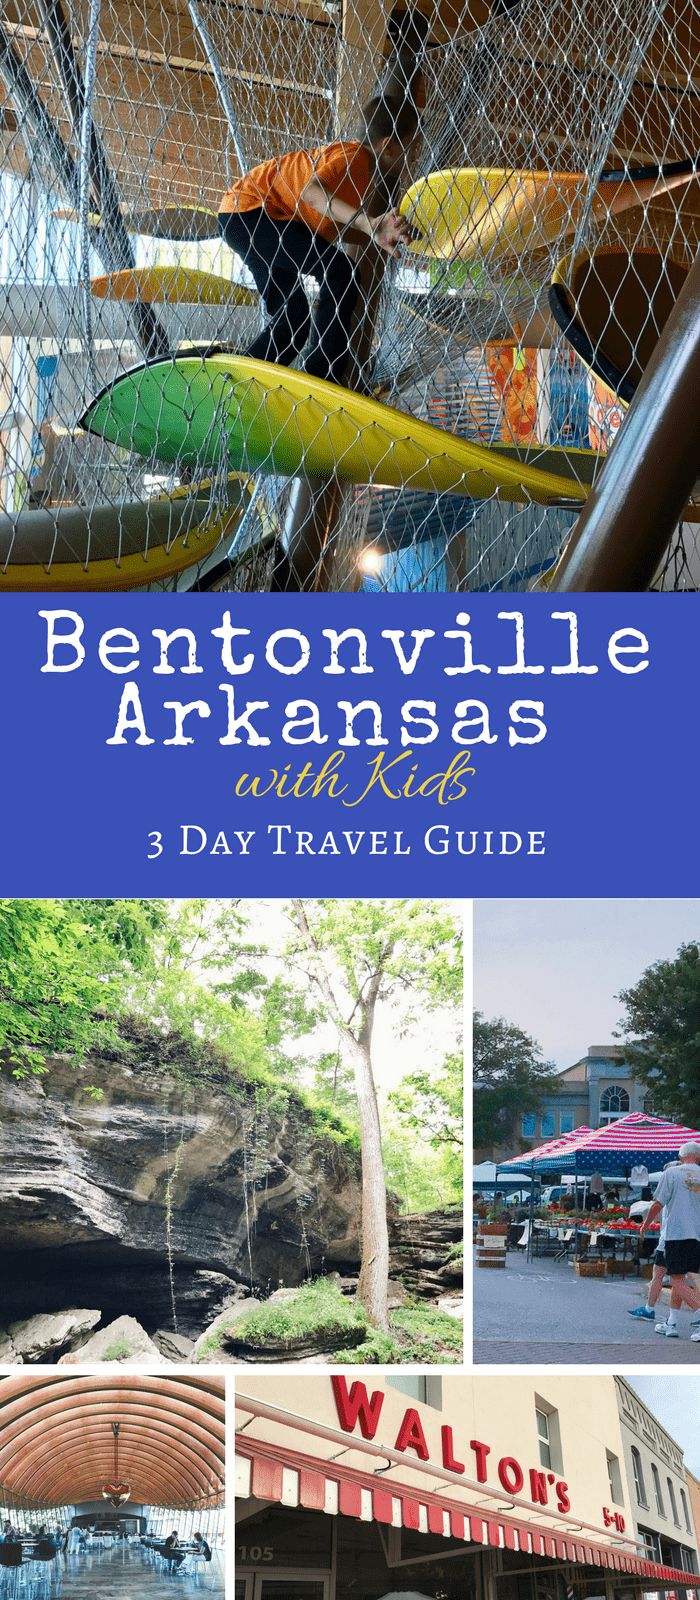 Looking for things to do in Bentonville, AR and Rogers, AR? This 3 day family friendly itinerary is filled with great sites, restaurants, and attractions. #visitbentonville #NWA #NWarkansas #arkansas